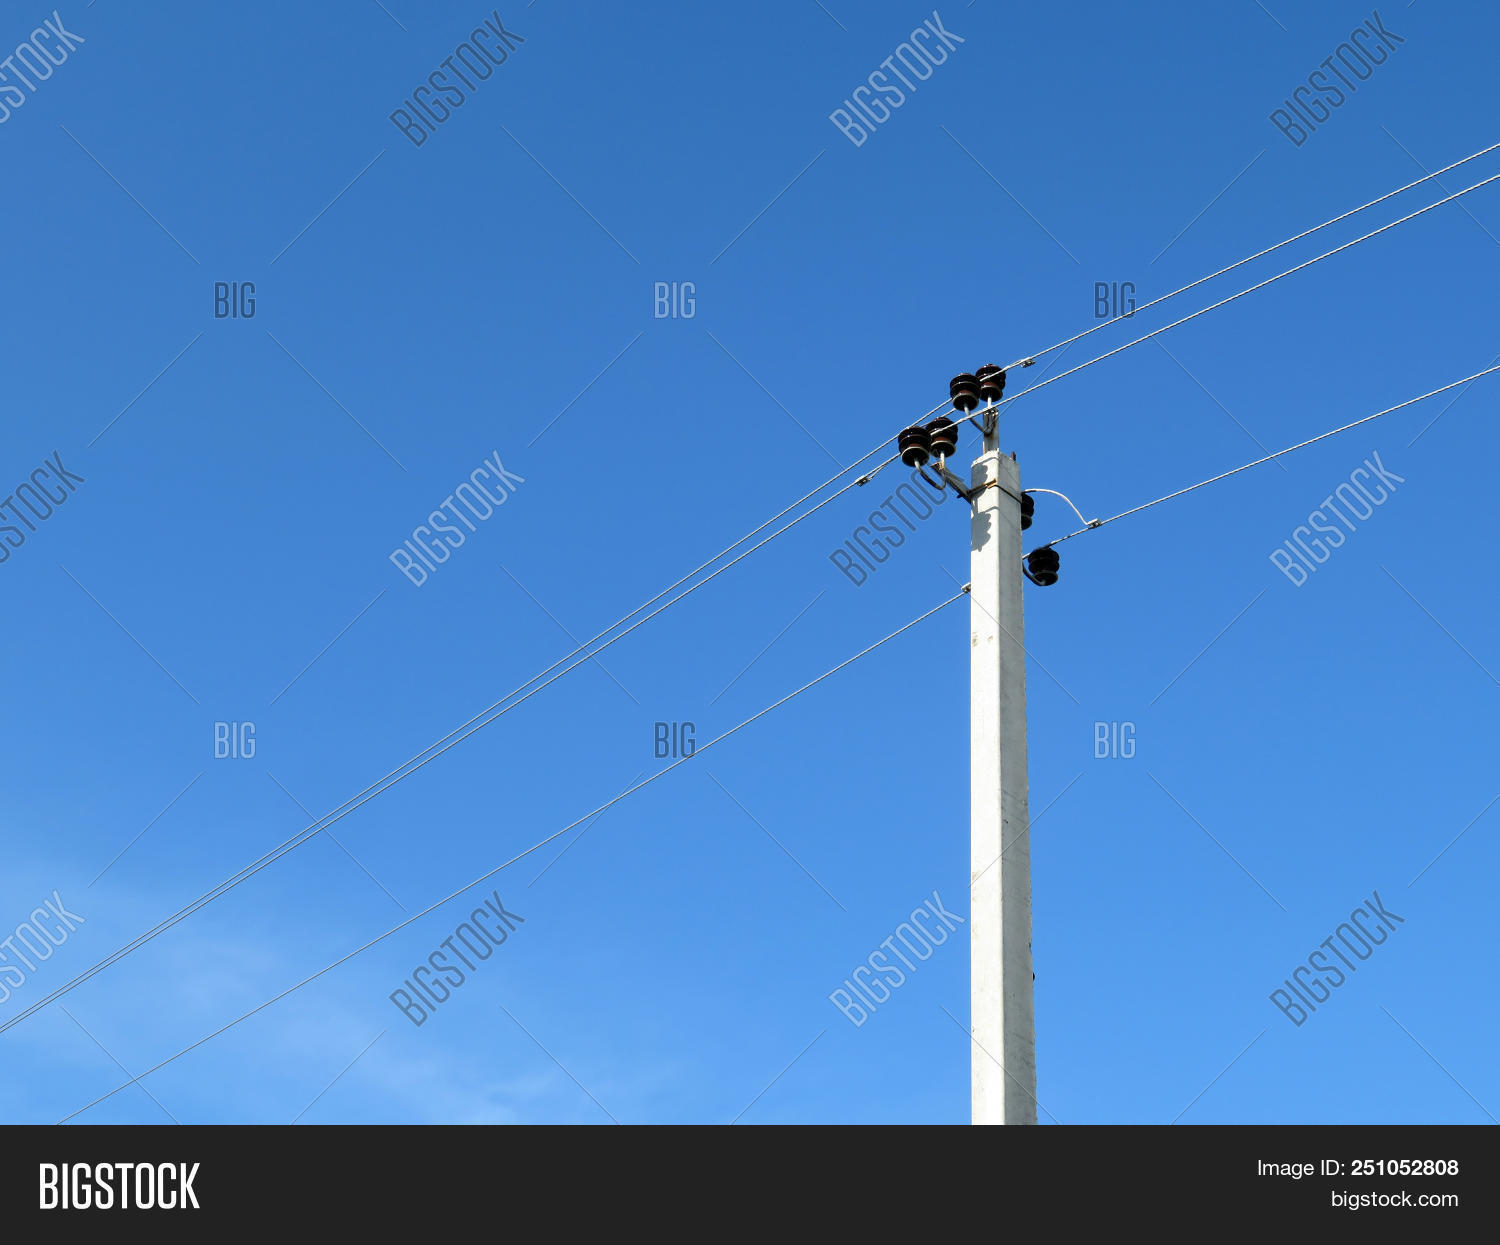 hight resolution of power line support isolated on blue sky background power pole with electrical wires and capacitors